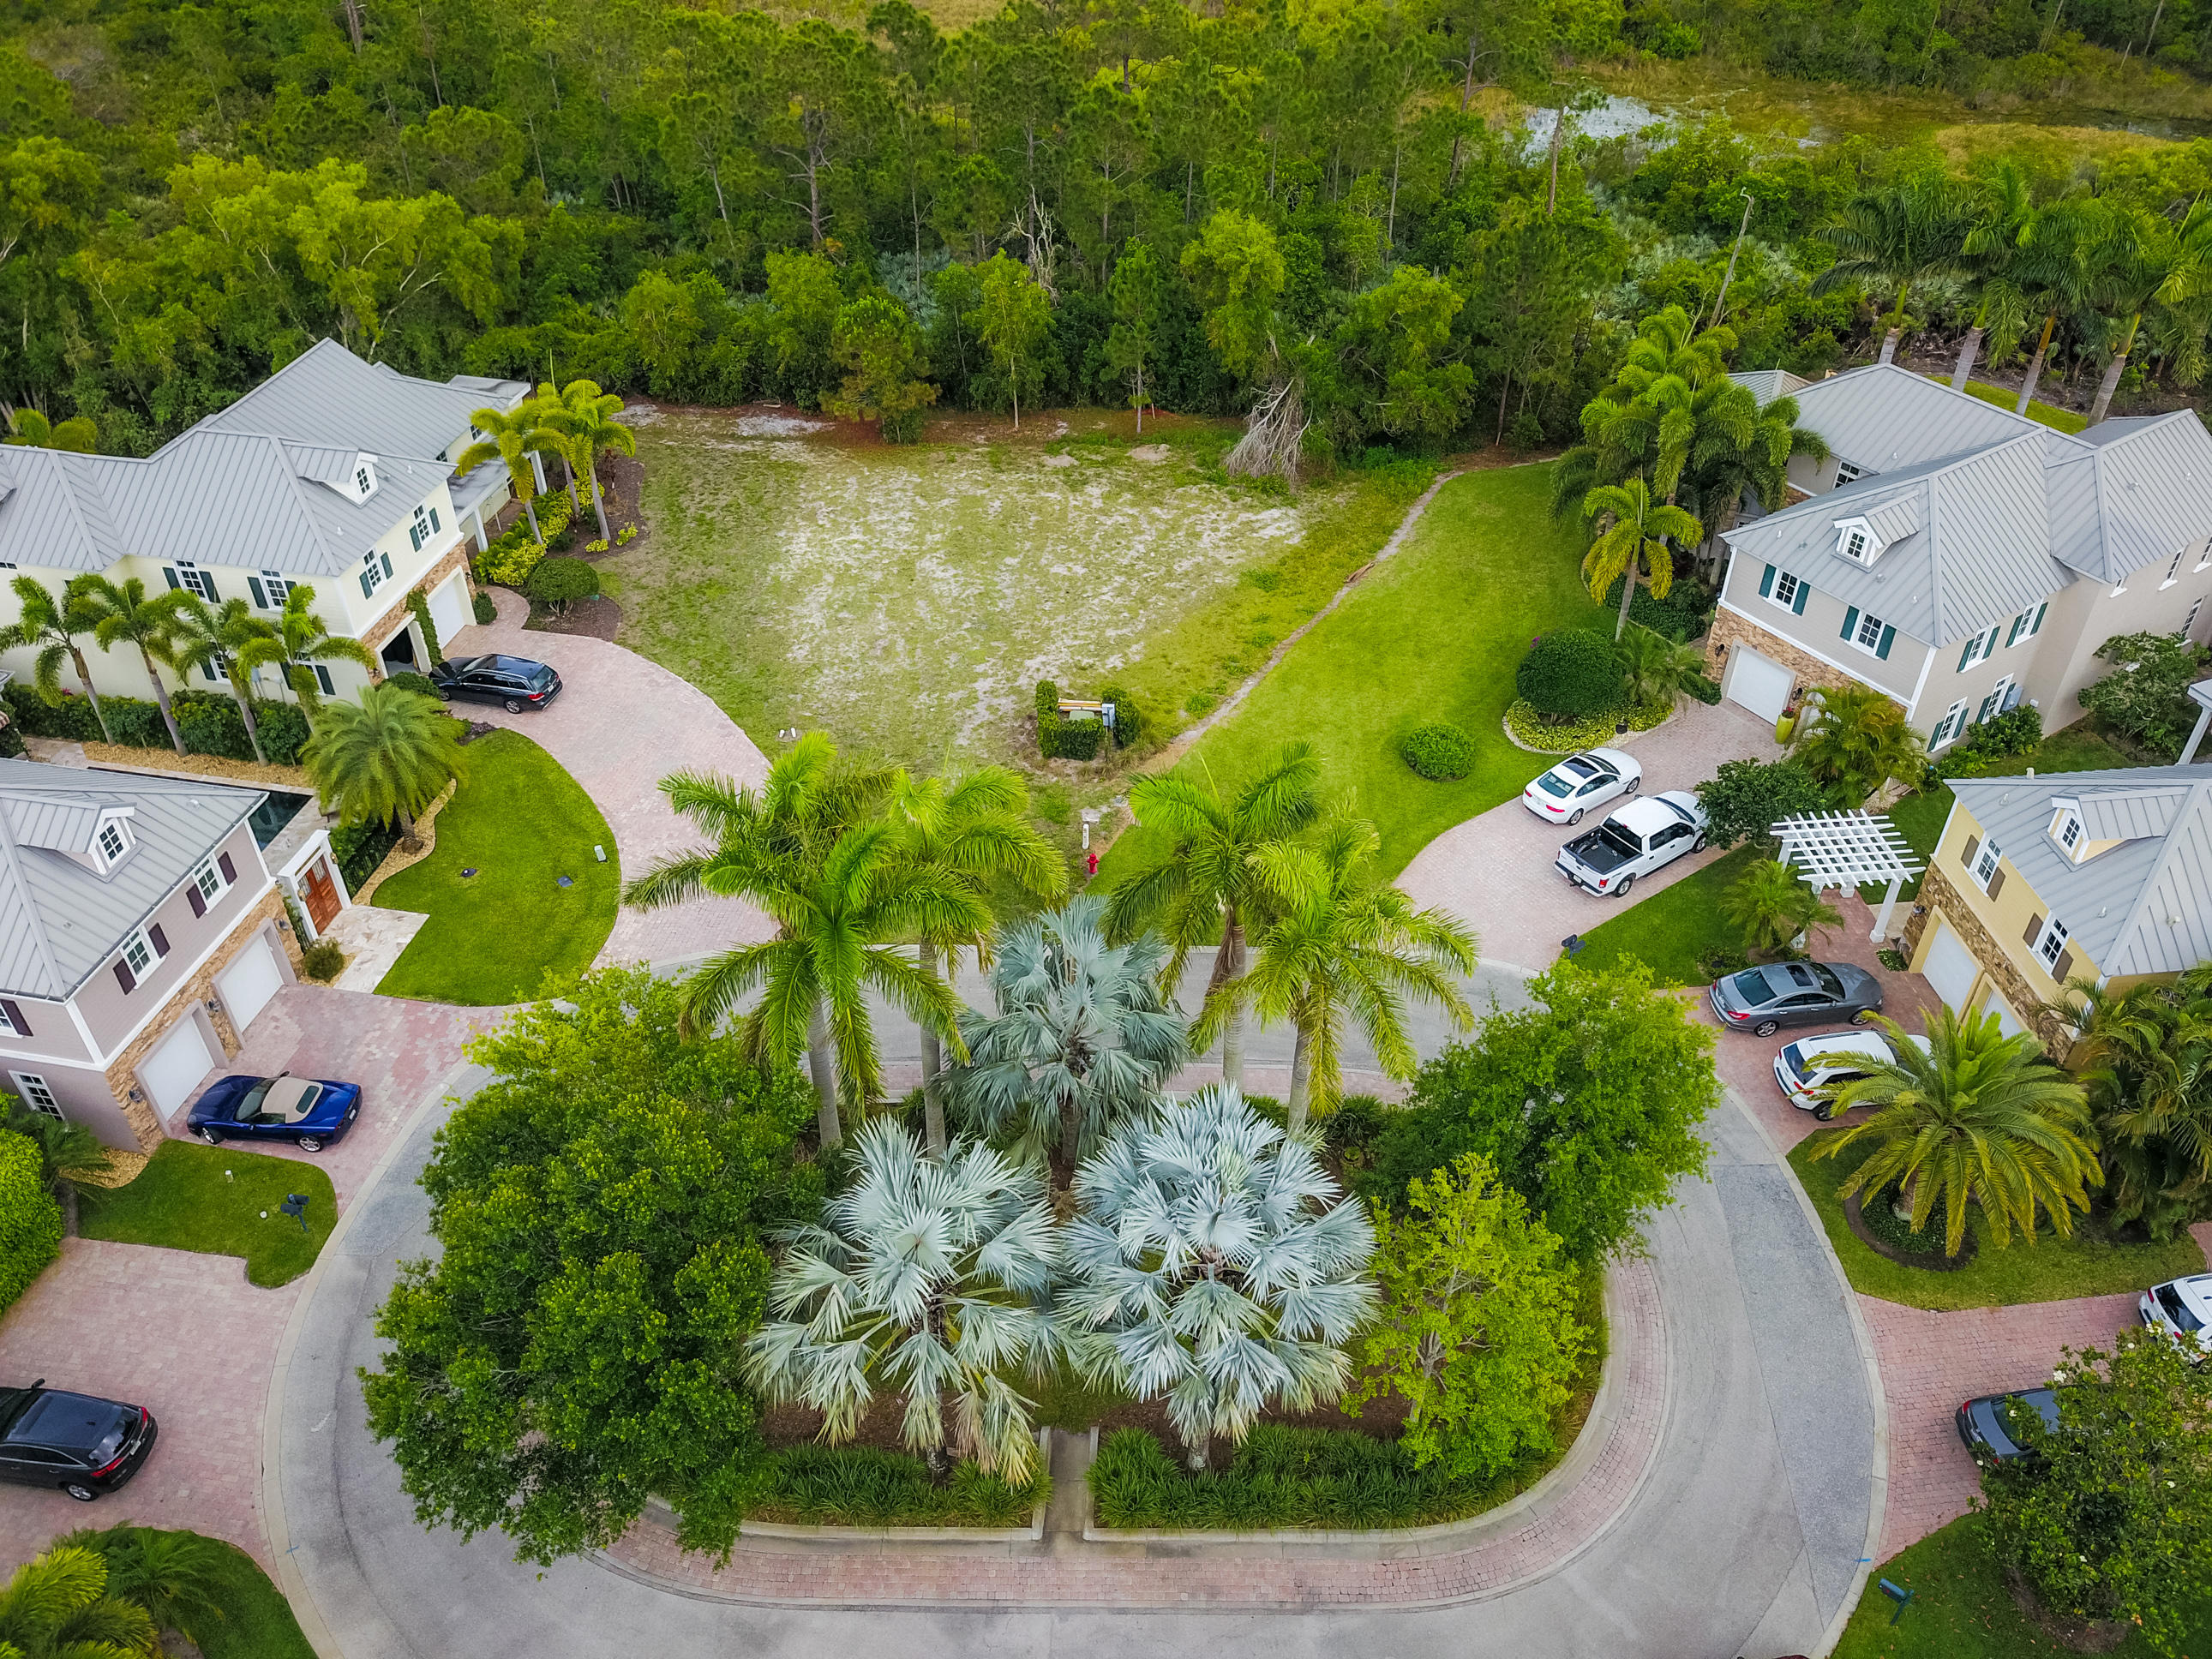 10363 Marigold Circle Lot 4, Hobe Sound, Florida 33455, ,C,Single family,Marigold,RX-10426453